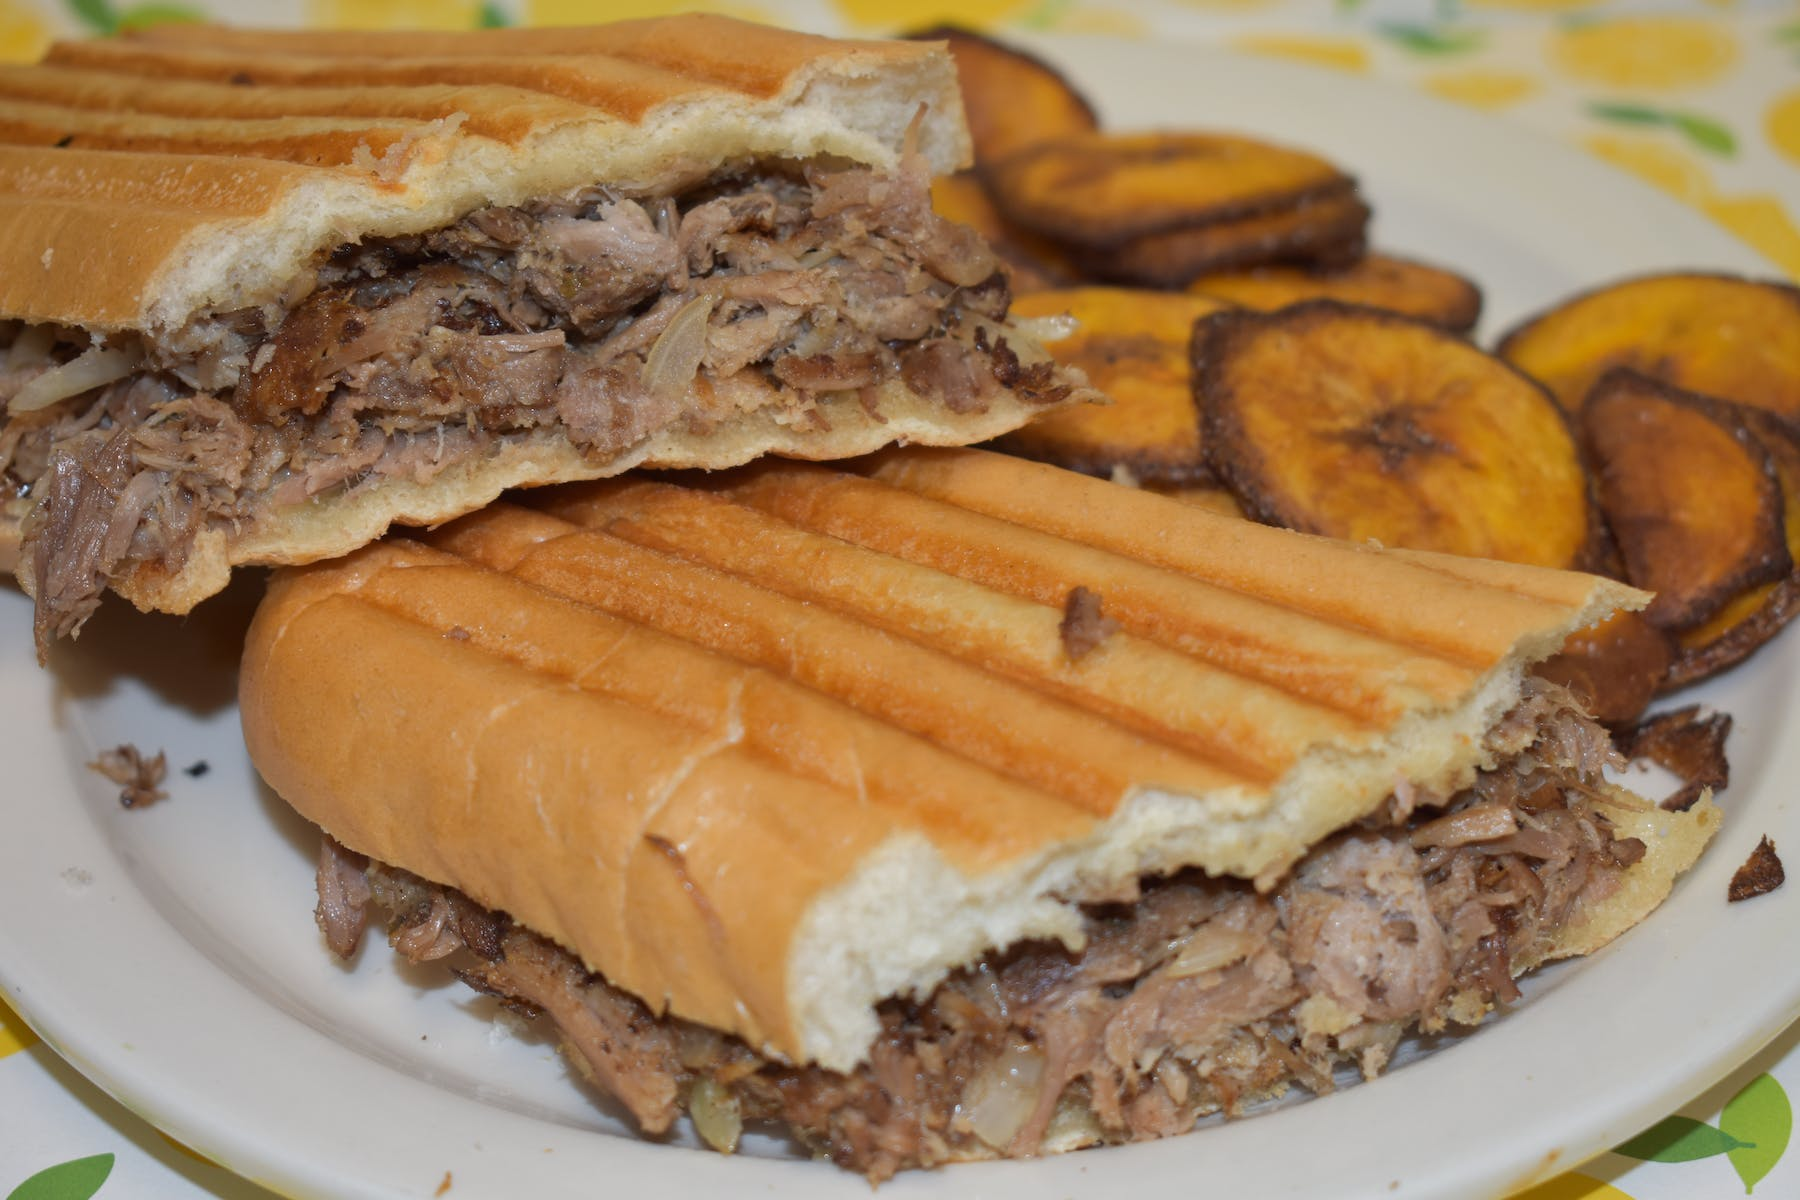 a sandwich with fried plantain slices